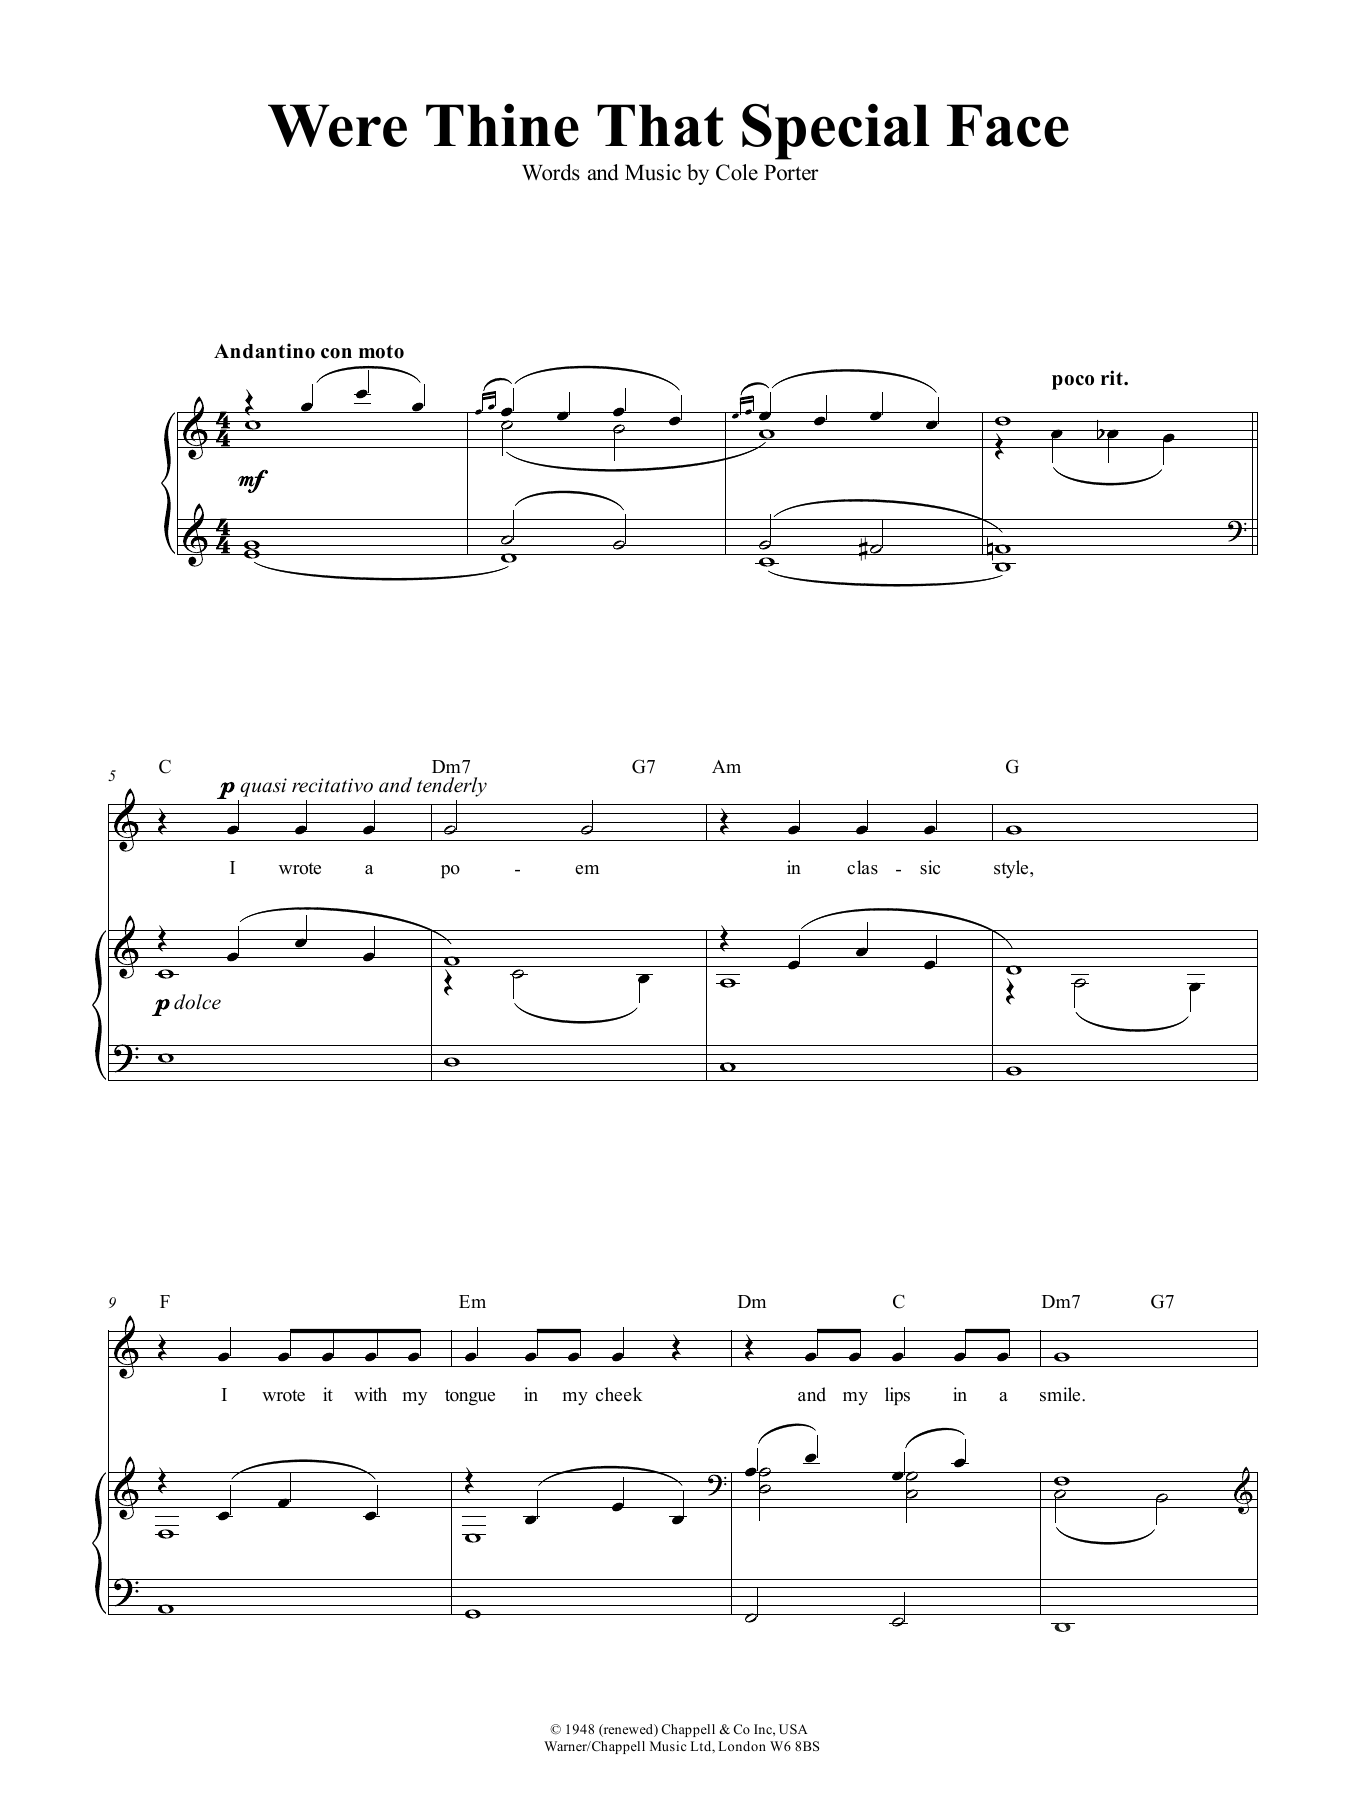 Were Thine That Special Face Sheet Music